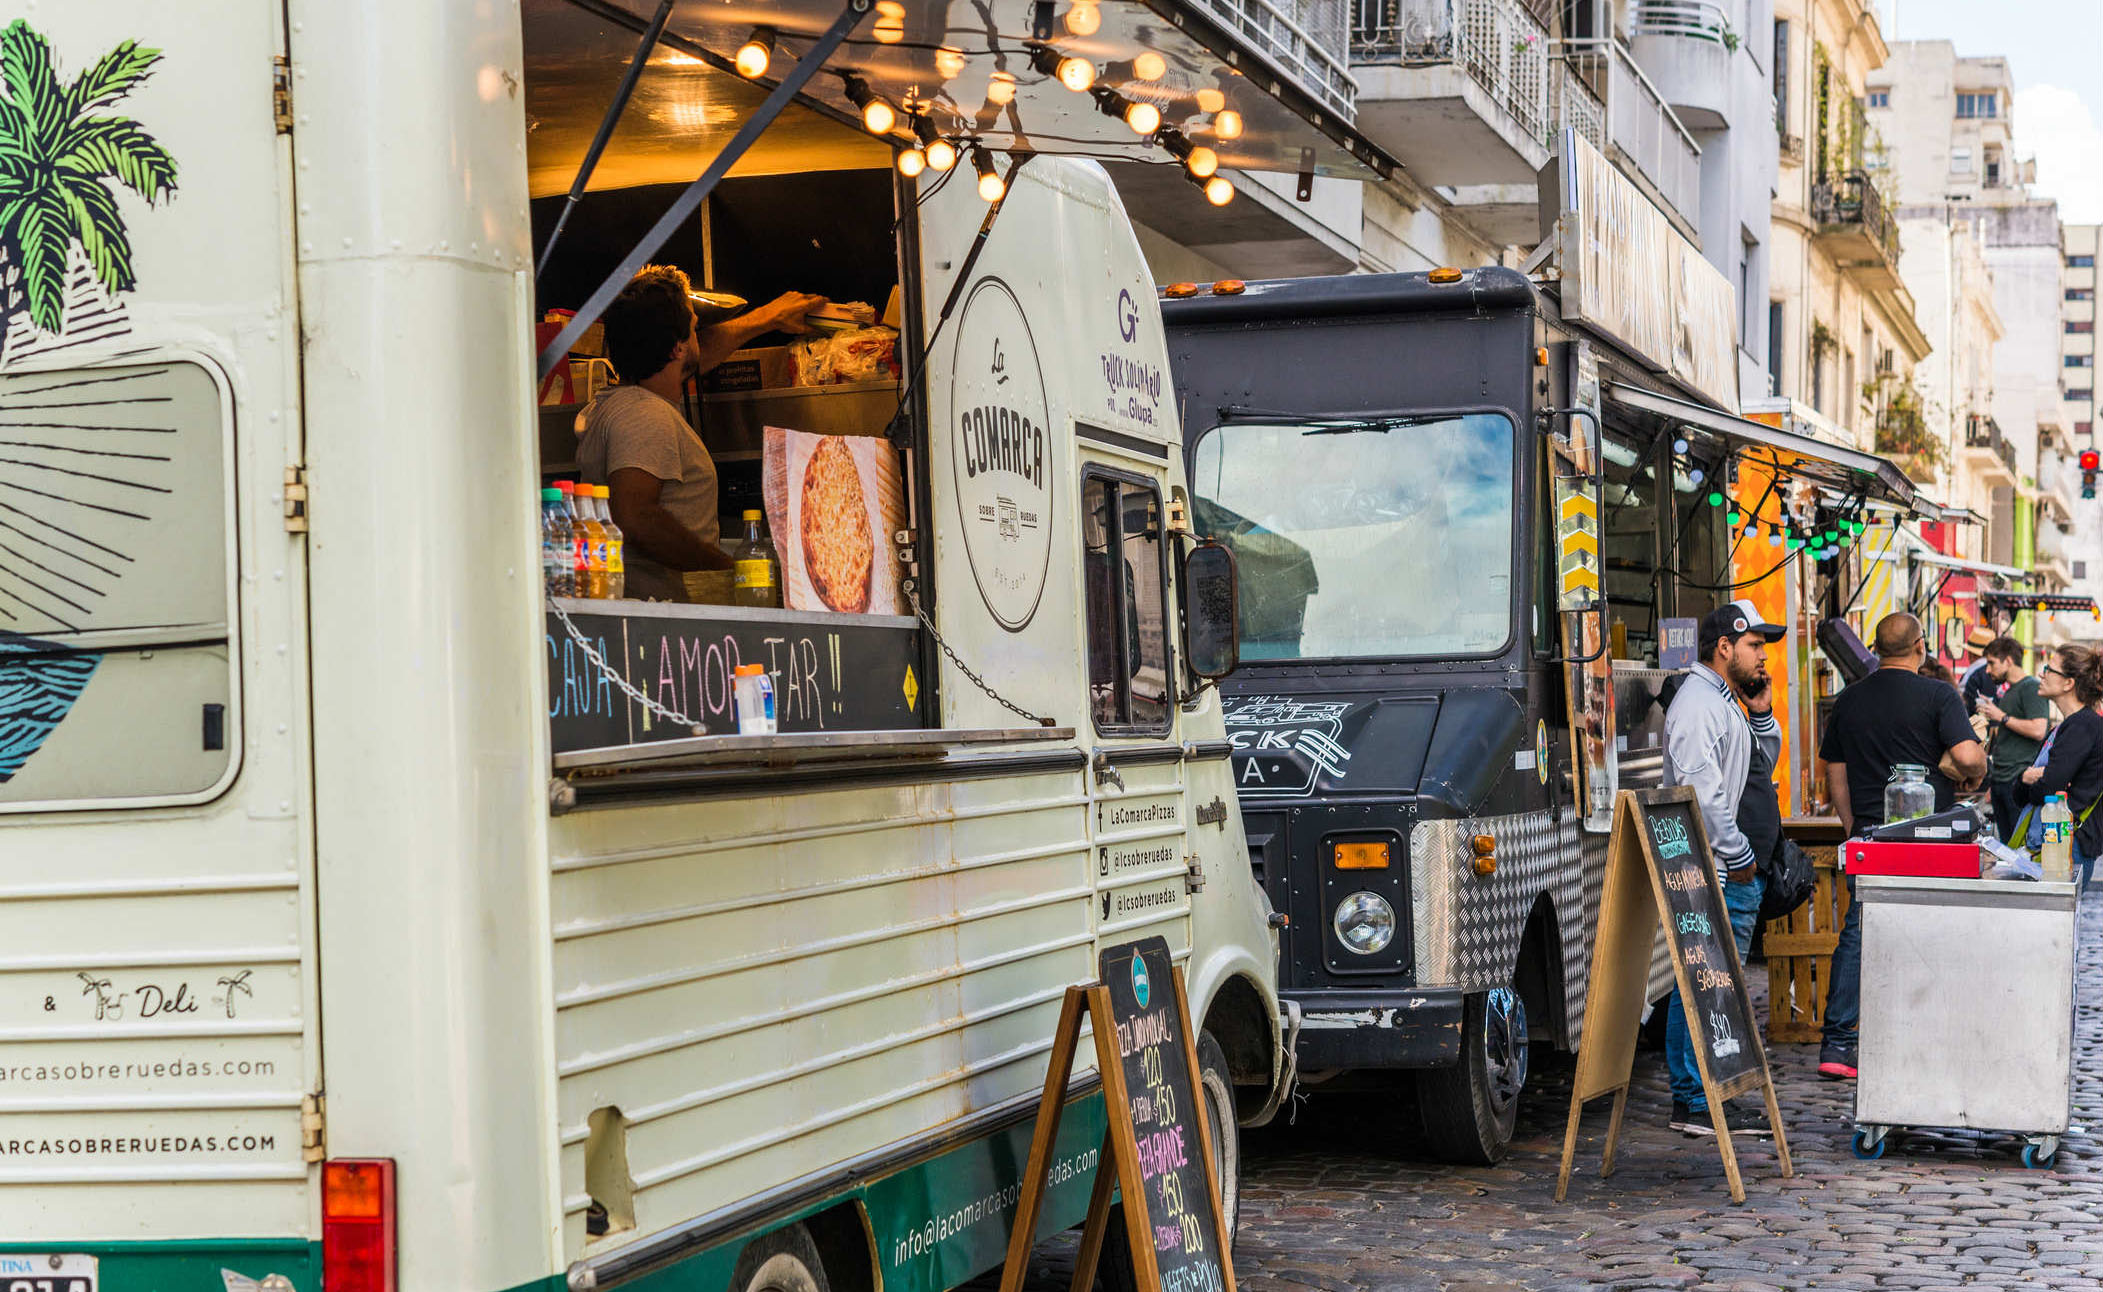 food trucks parked next to each other on a street